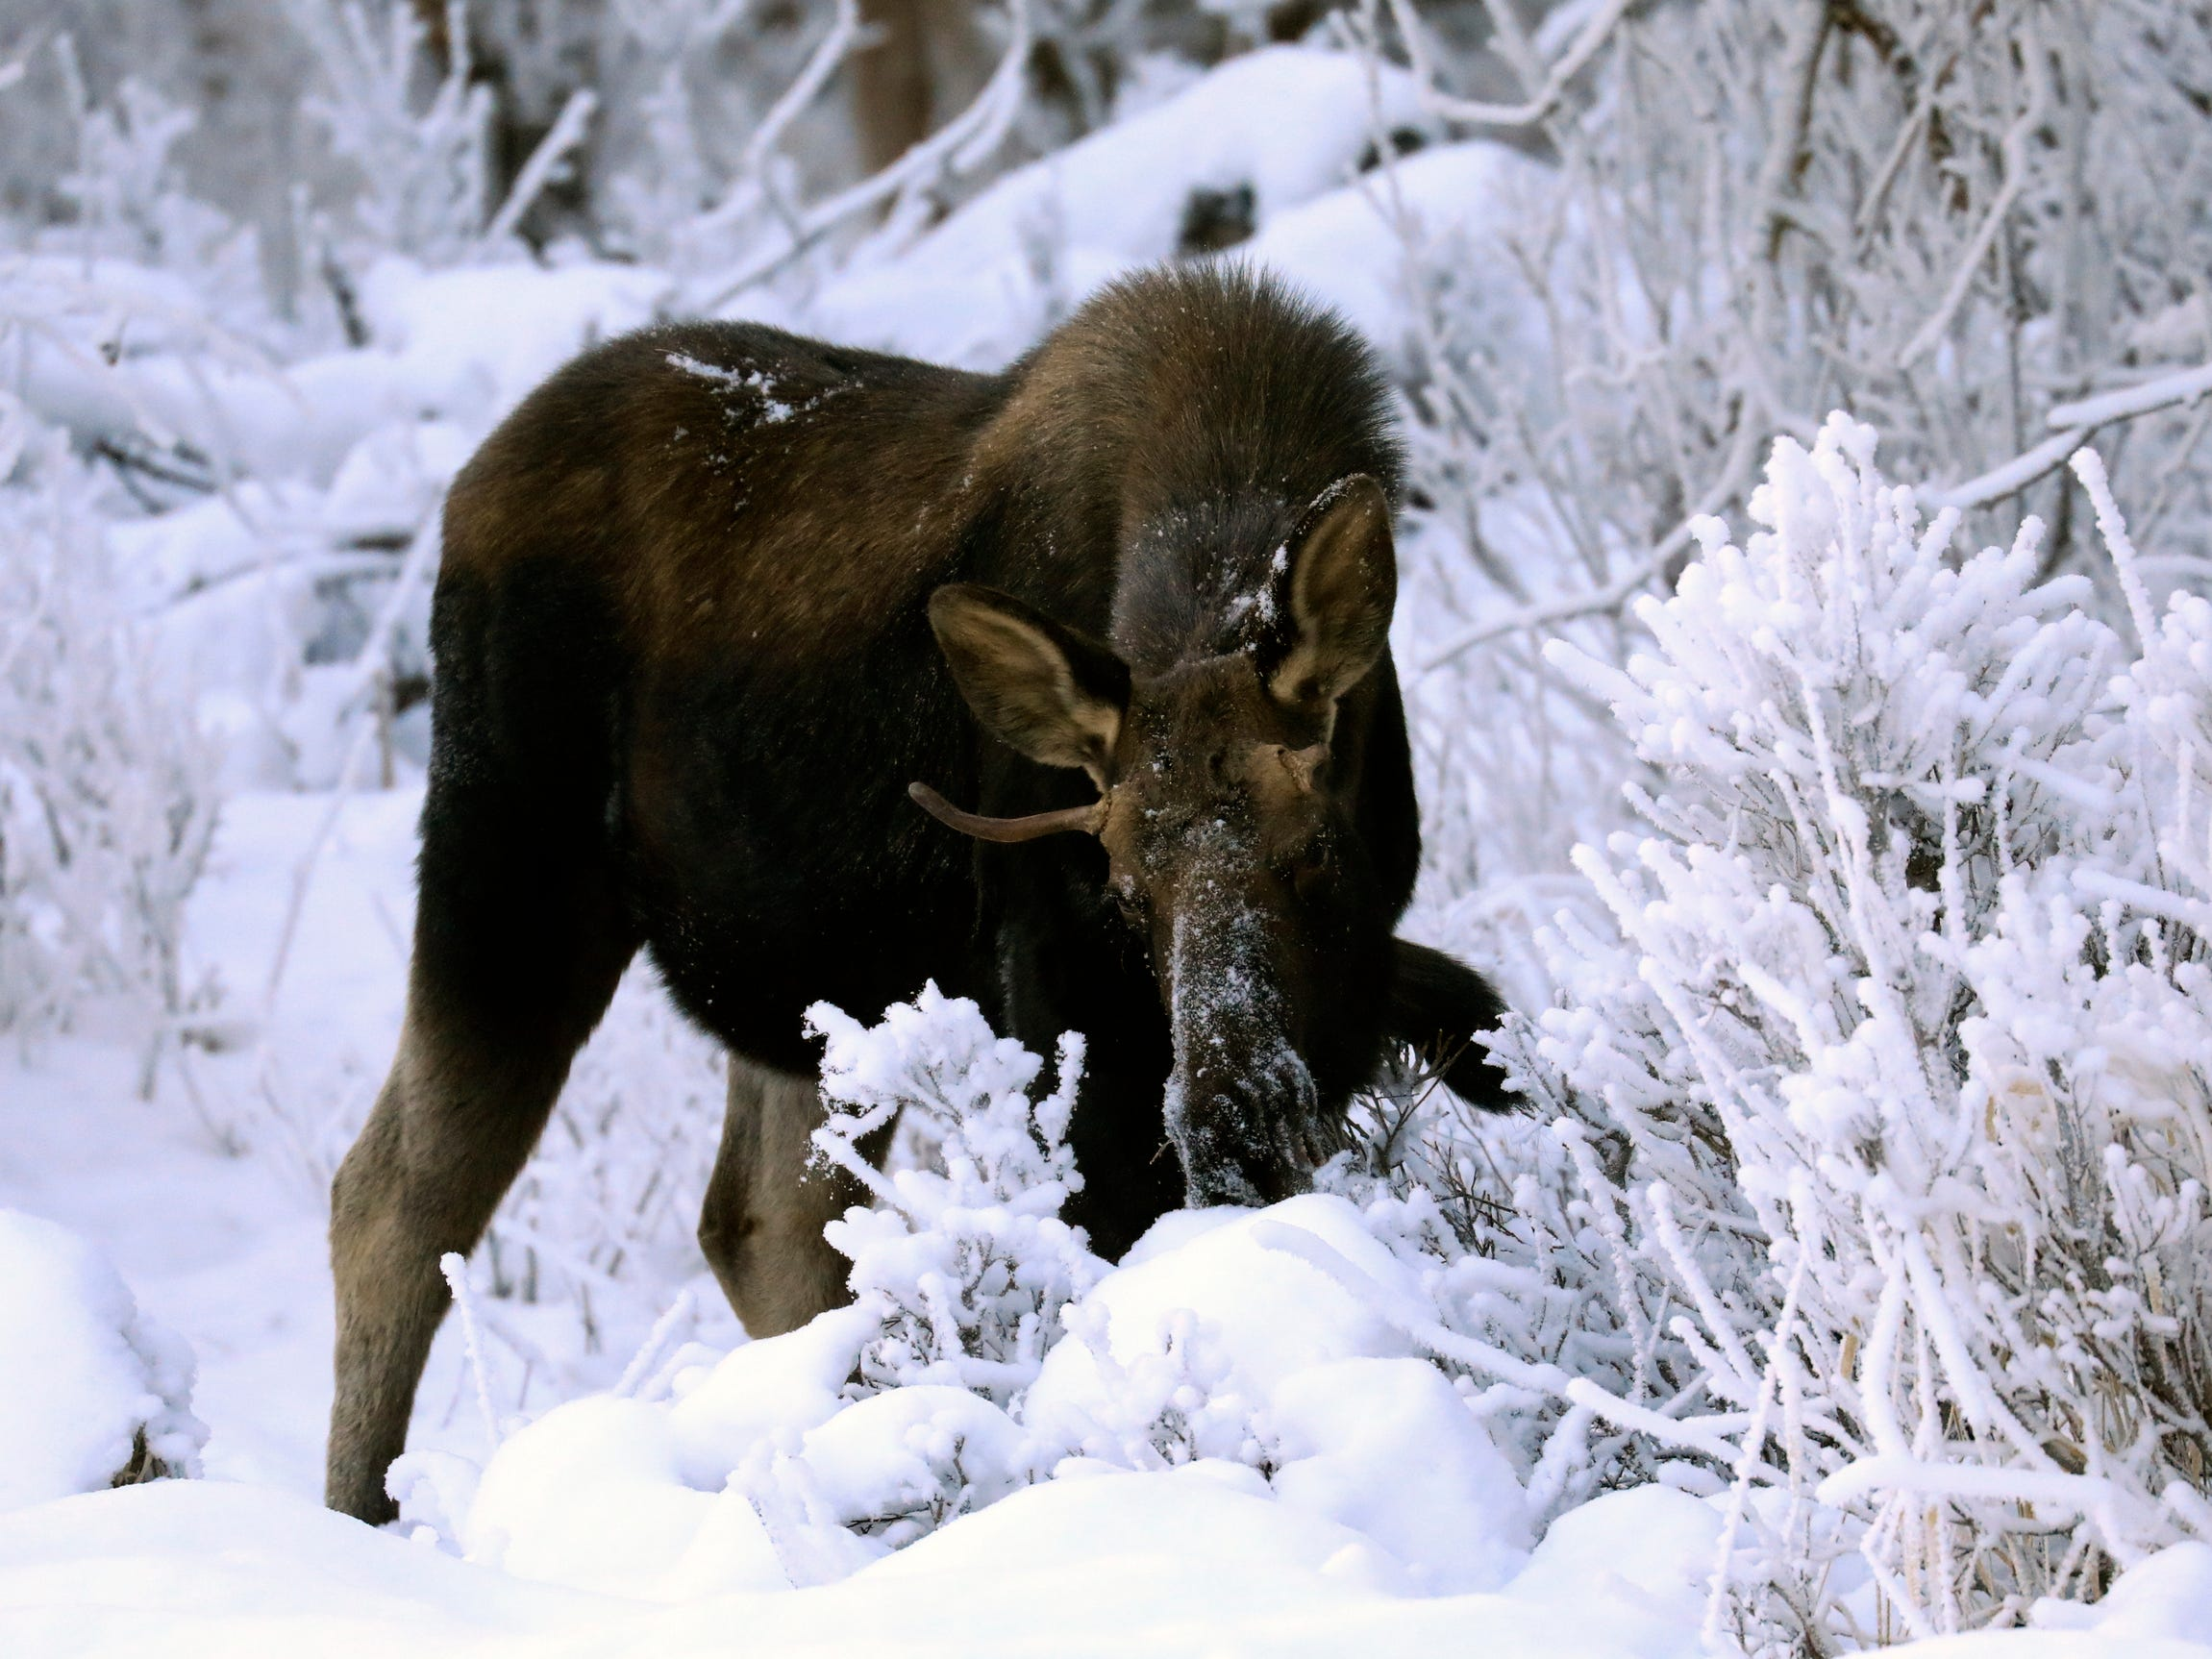 A young bull moose with snow on its face feeds on twigs in Anchorage, AK.   Jan. 6, 2019. Temperatures on dipped slightly below zero in Alaska's largest city.